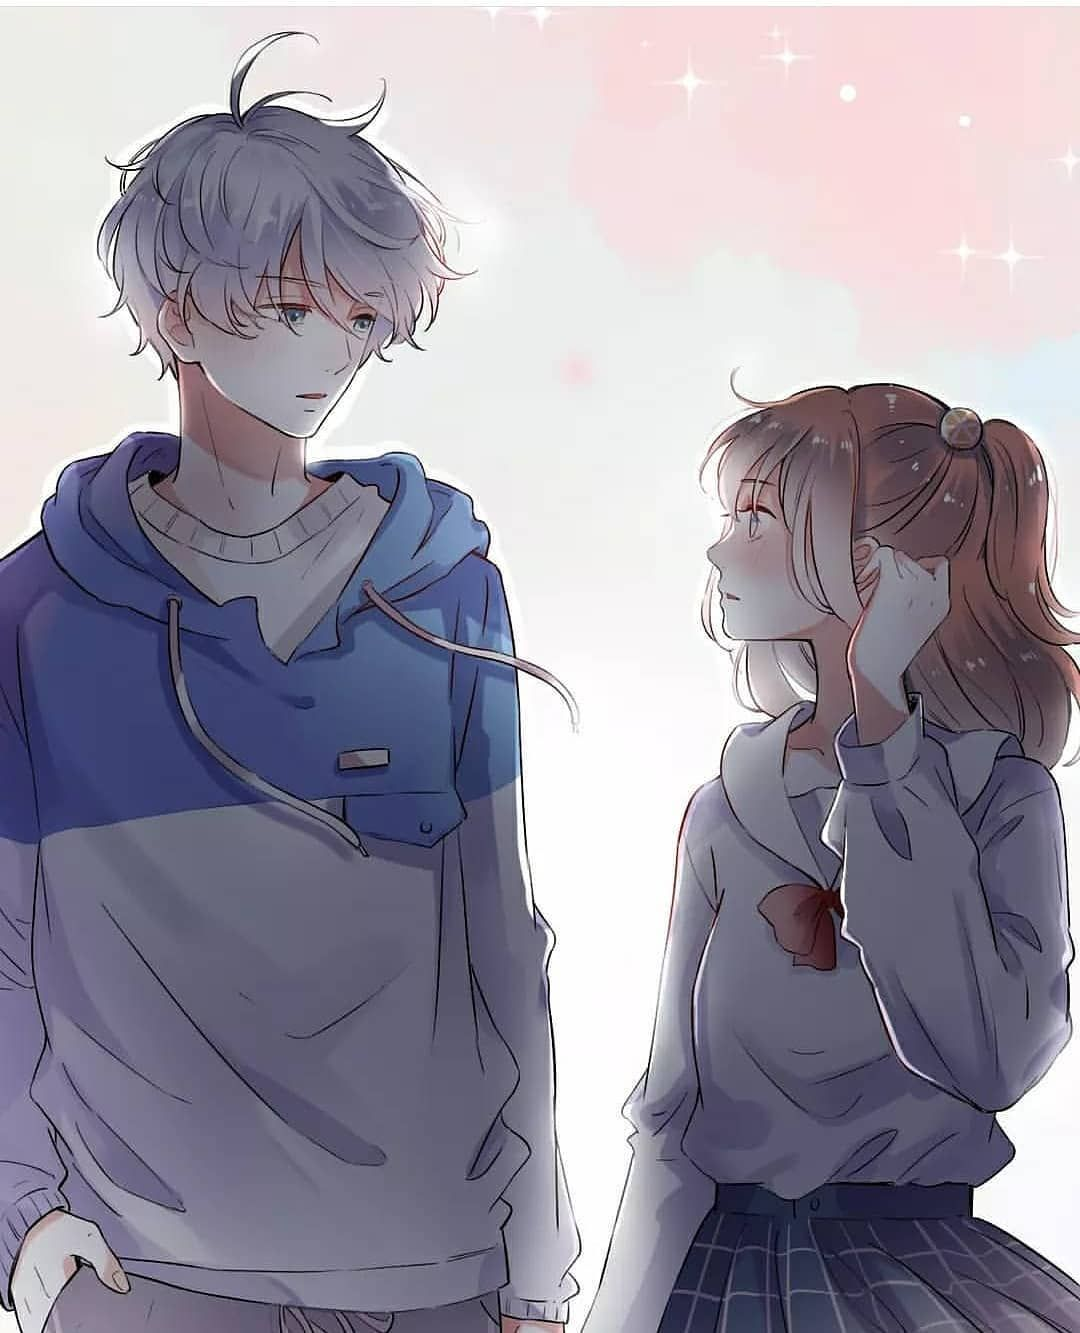 The day we met, frozen I held my breath🎵 Follow _anime.in